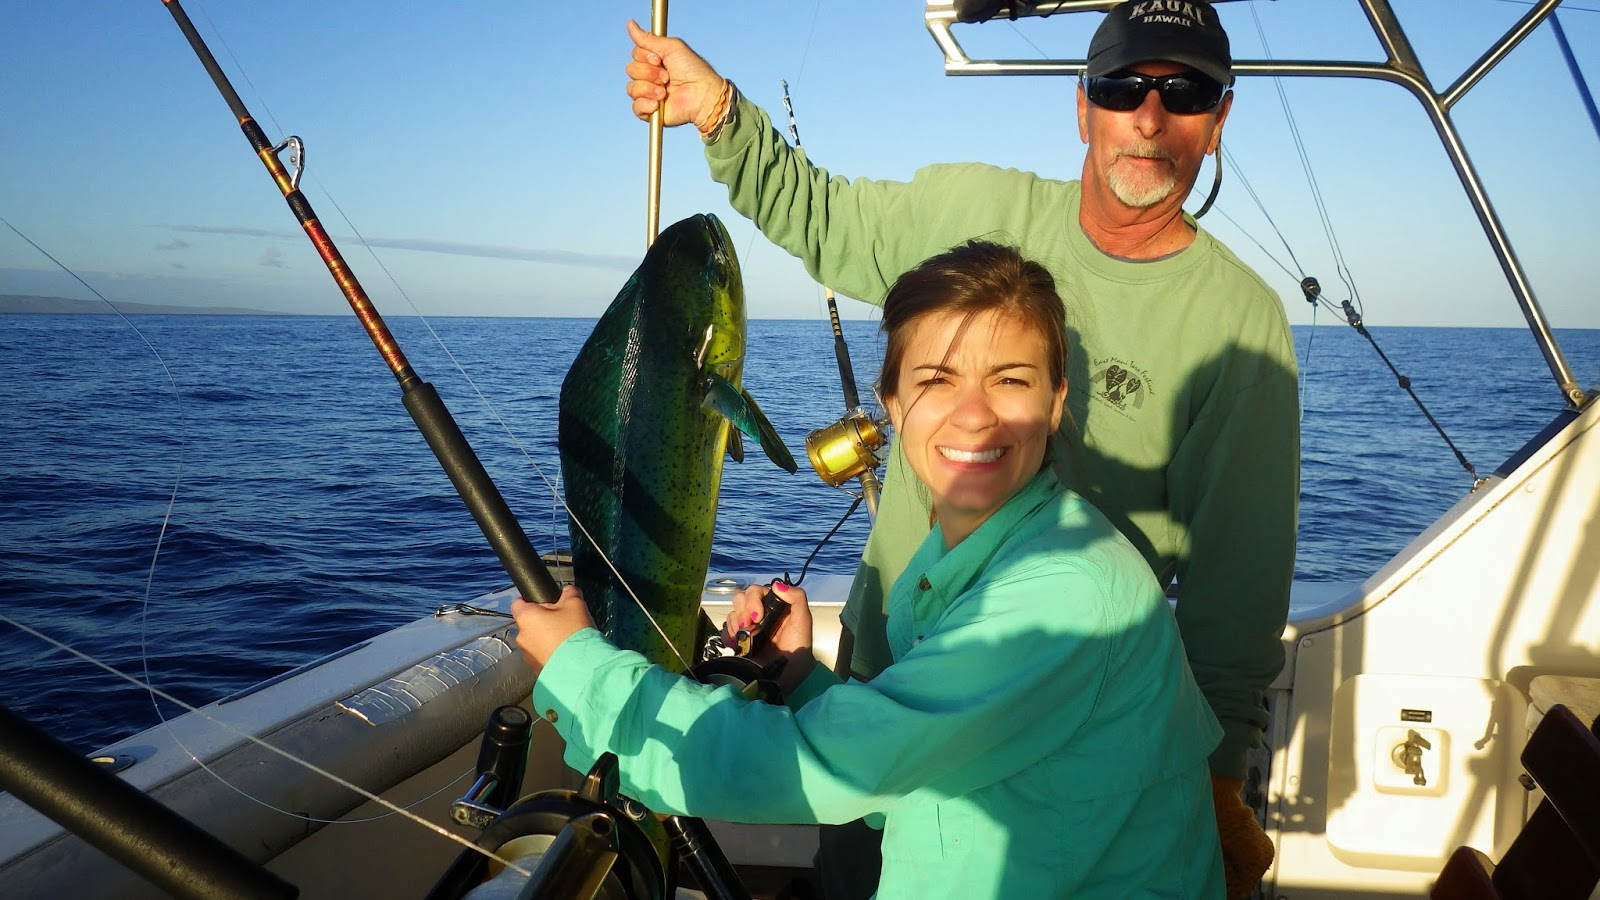 Sport Fishing off Hawaii for Dorado